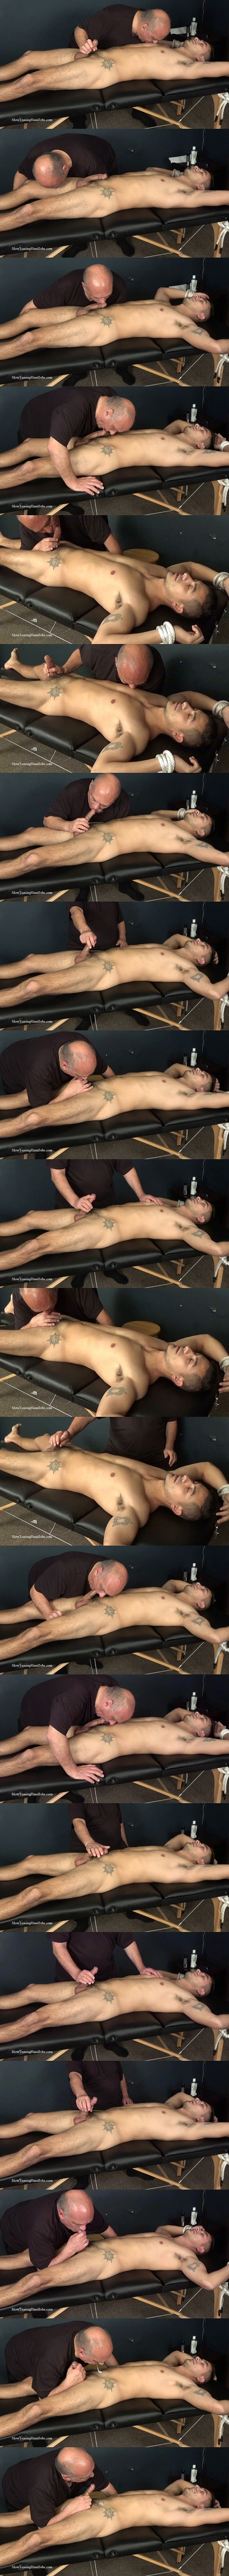 Slowteasinghandjobs - master Rich gets fit straight guy Tim tied to a massage table and slowly edges Tim's cock before Tim cums in Rich's mouth in Edging Blow Job 02